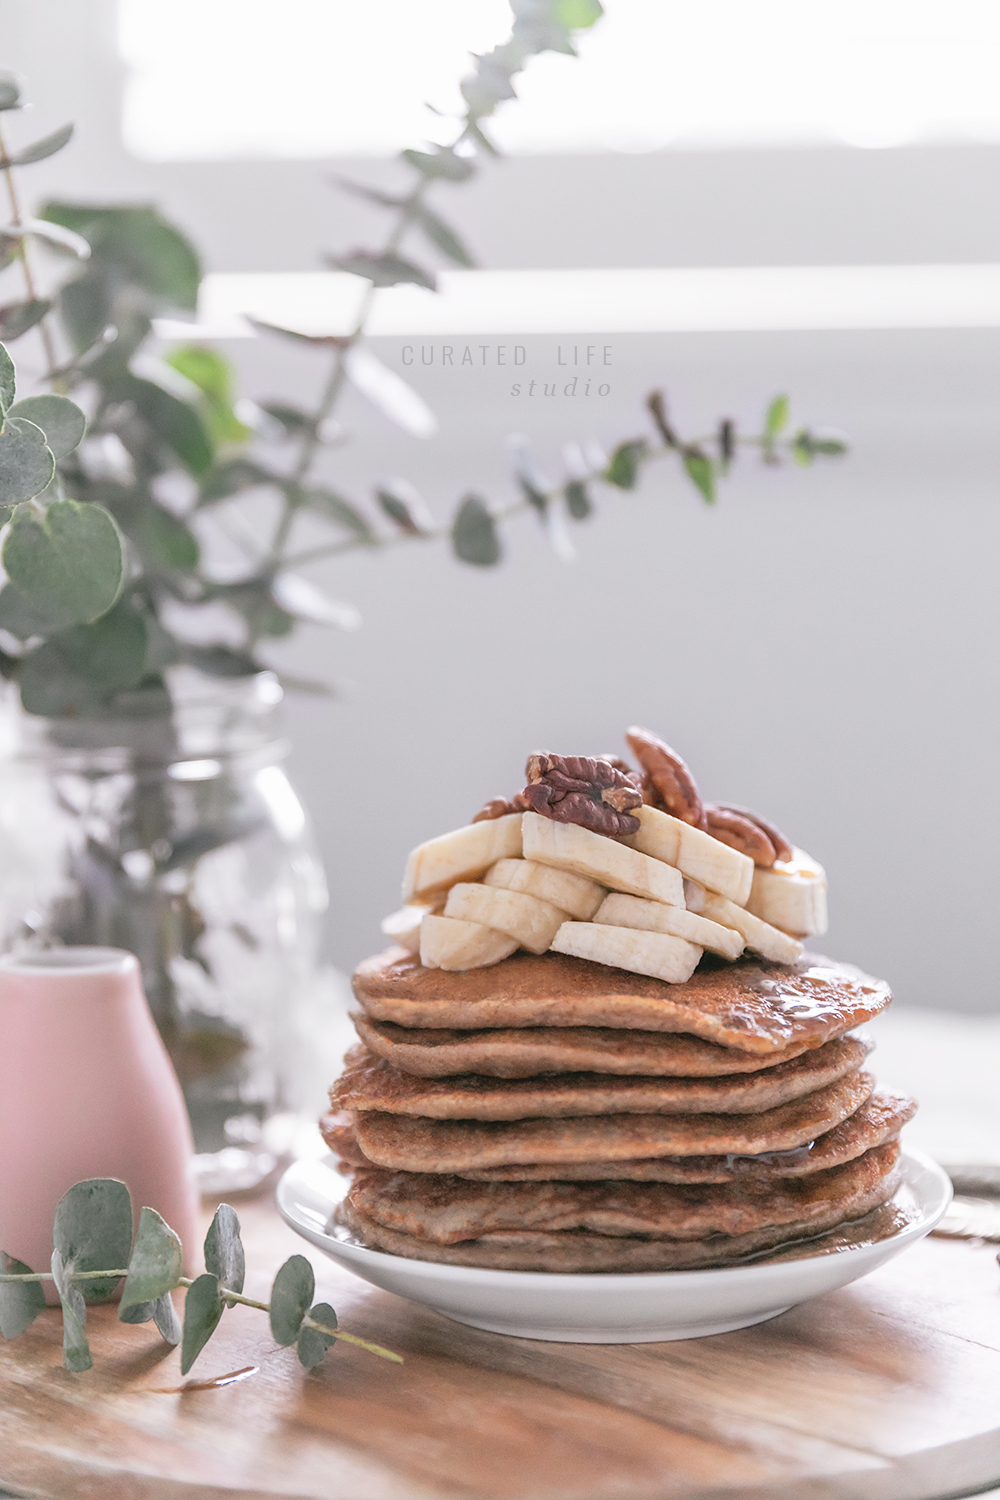 A macro image of the stack of banana pancakes. In the foreground sits a jar spilling with eucalyptus leaves and a small pink ceramic jar filled with maple syrup.